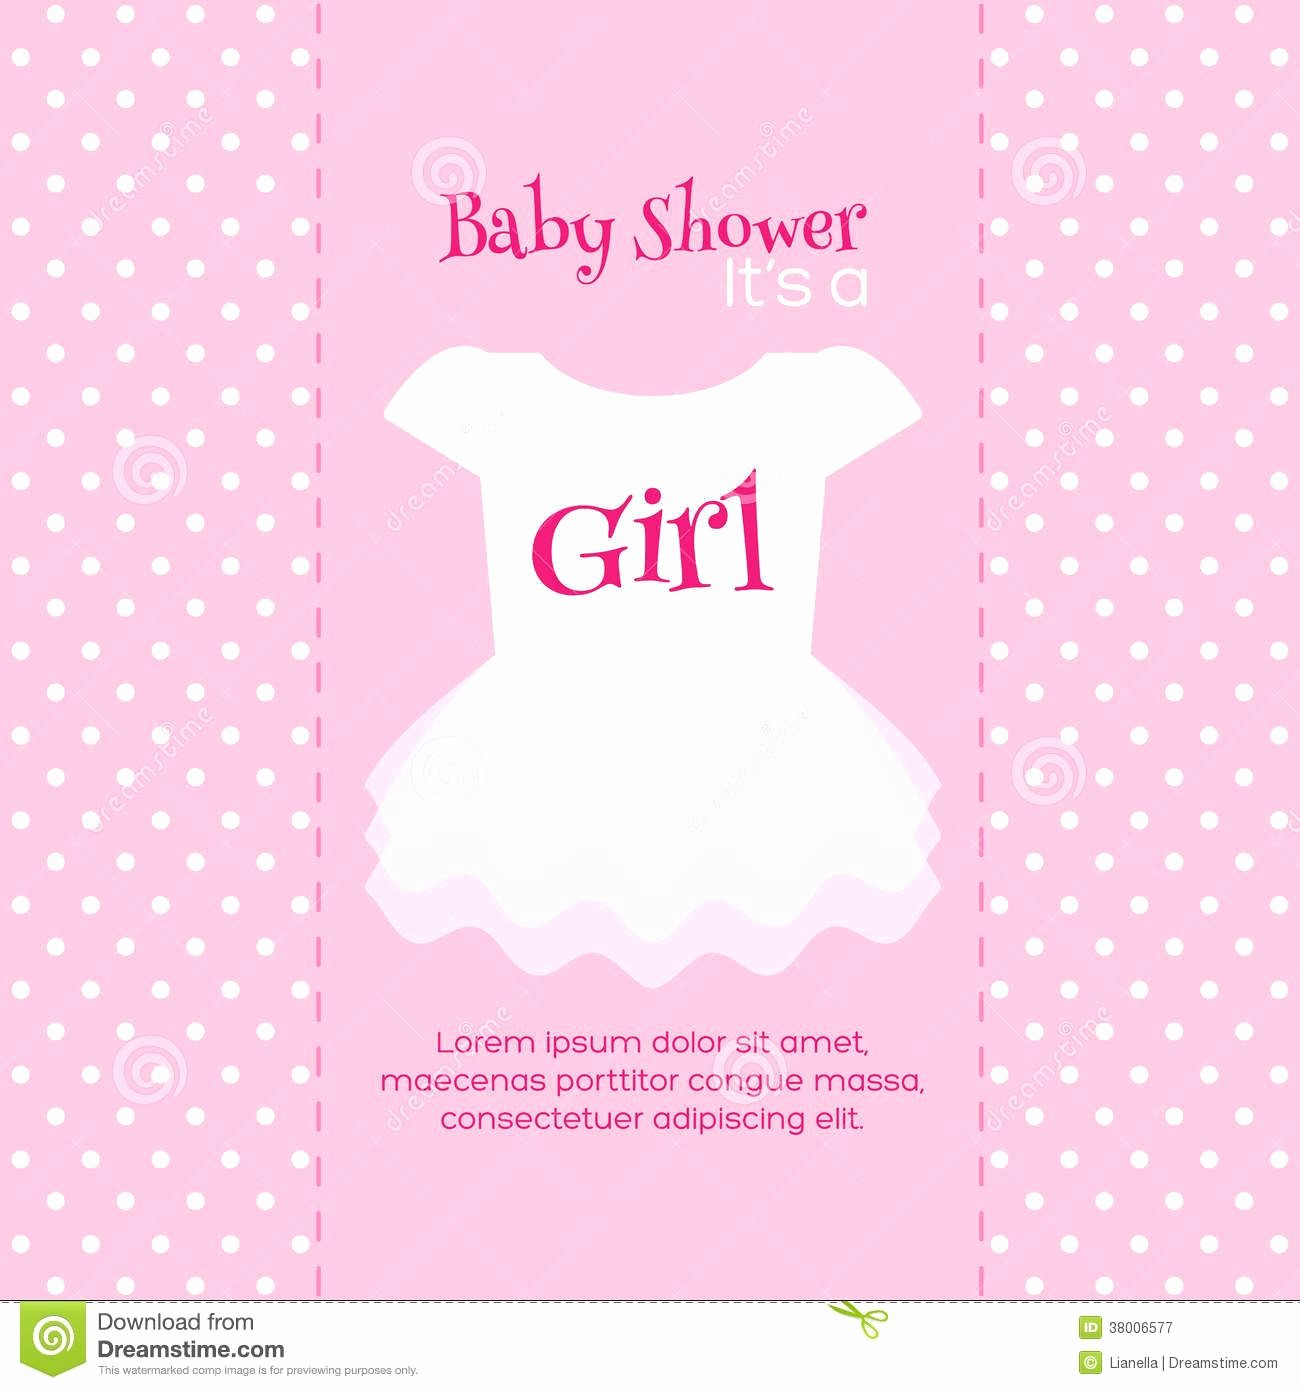 Baby Shower Invitations Templates Editable Lovely Design Free Printable Baby Shower Invitations for Girls